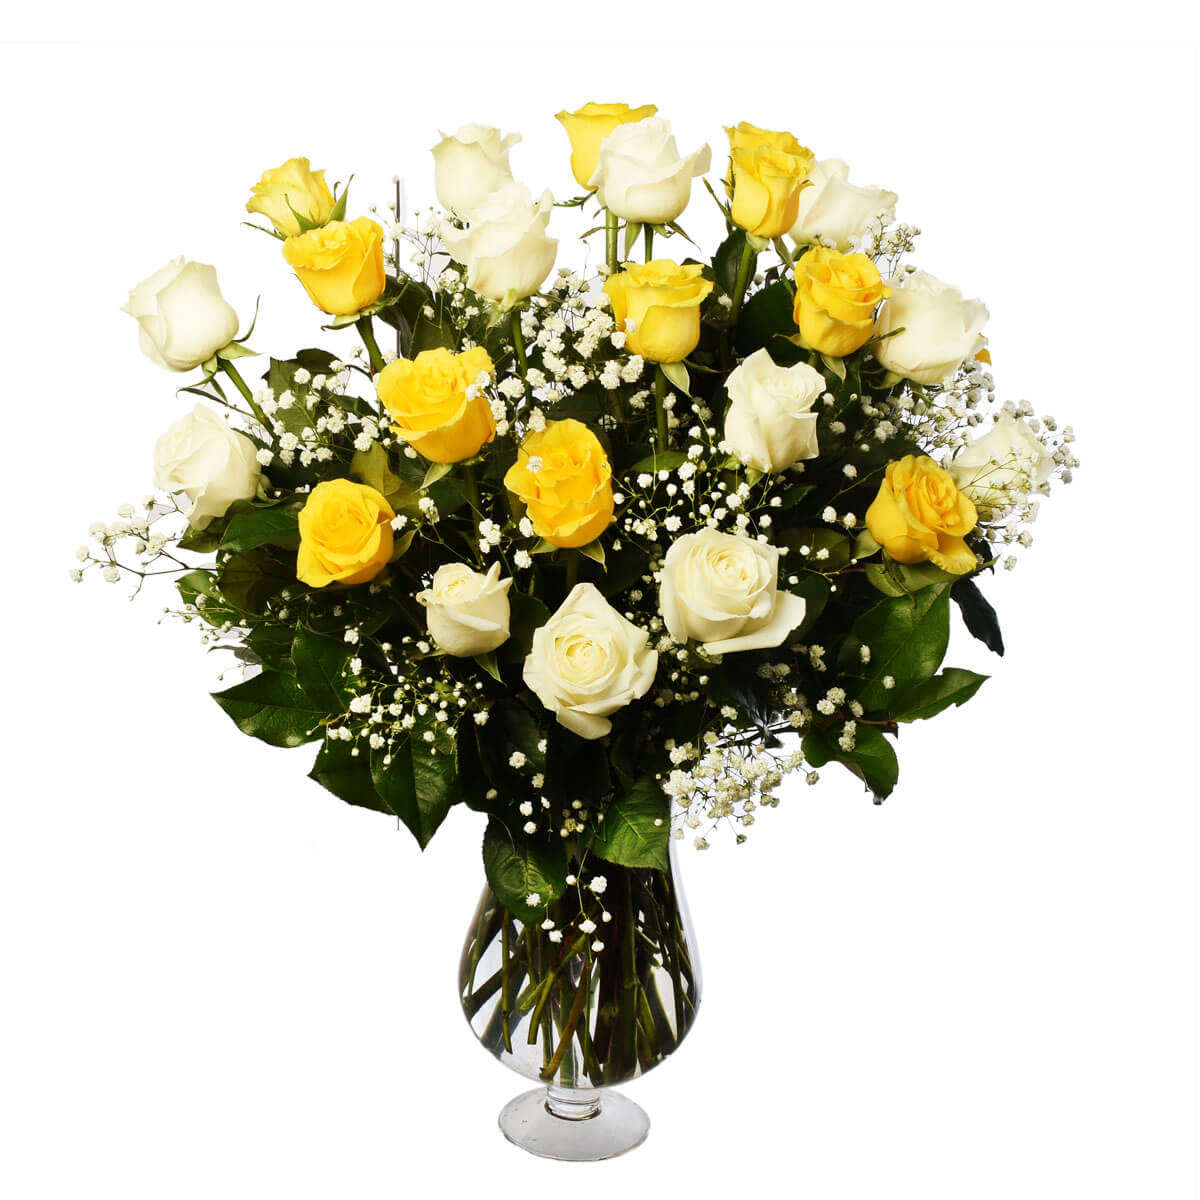 Funeral Flower arrangement with white and yellow roses for sympathy from Burnaby Florist Adele Rae.